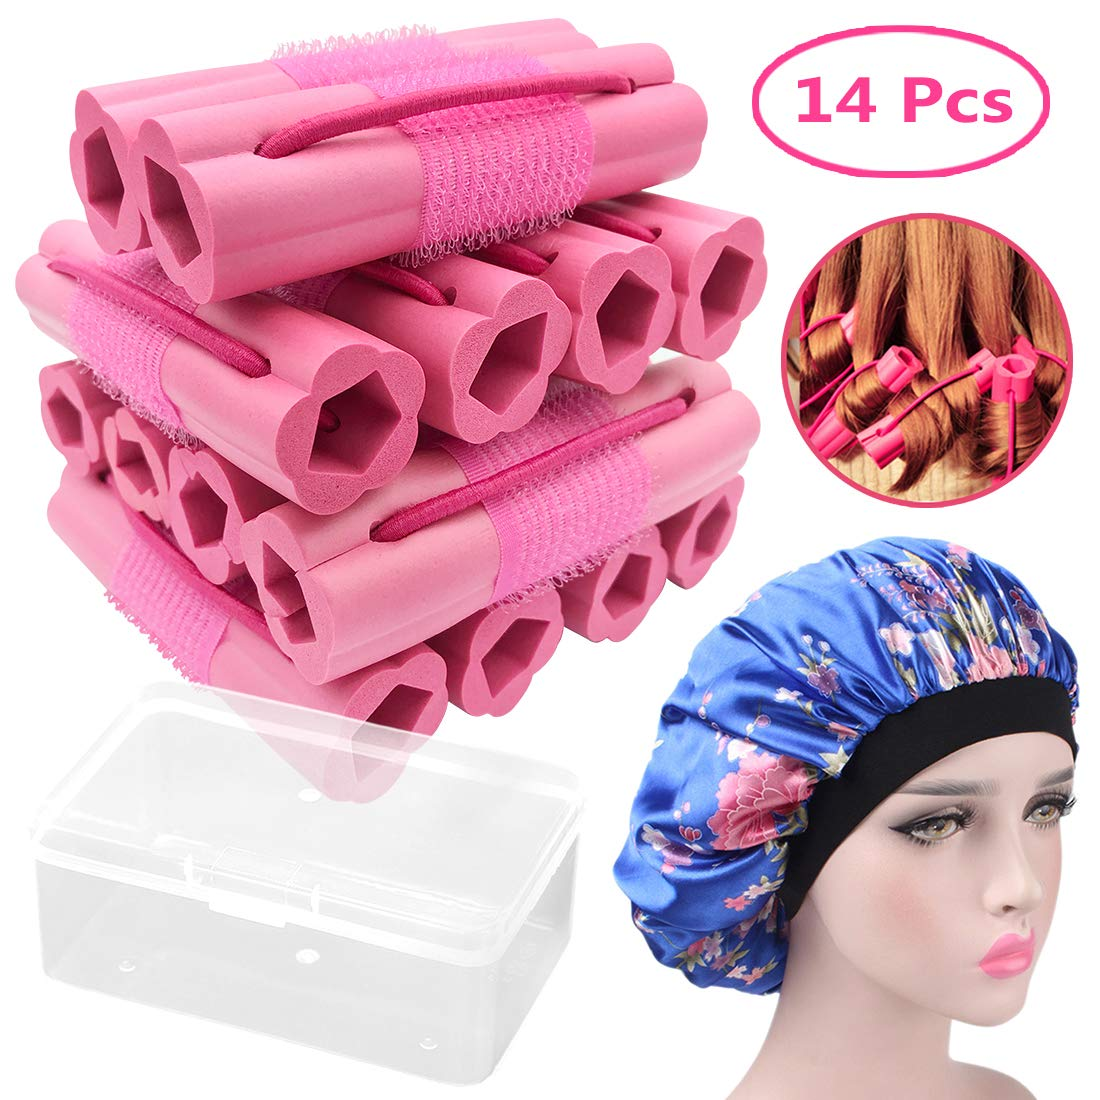 Hair Rollers Curlers, Foam Sponge Hair Curlers, Pillow Hair Curlers, No Heat Sleeping Hair Rollers for Long & Short & Thick & Thin Hair, Flexible Hair Curlers for Women & Girls, 14 Pcs with Sleep Cap by Ousen Beauty